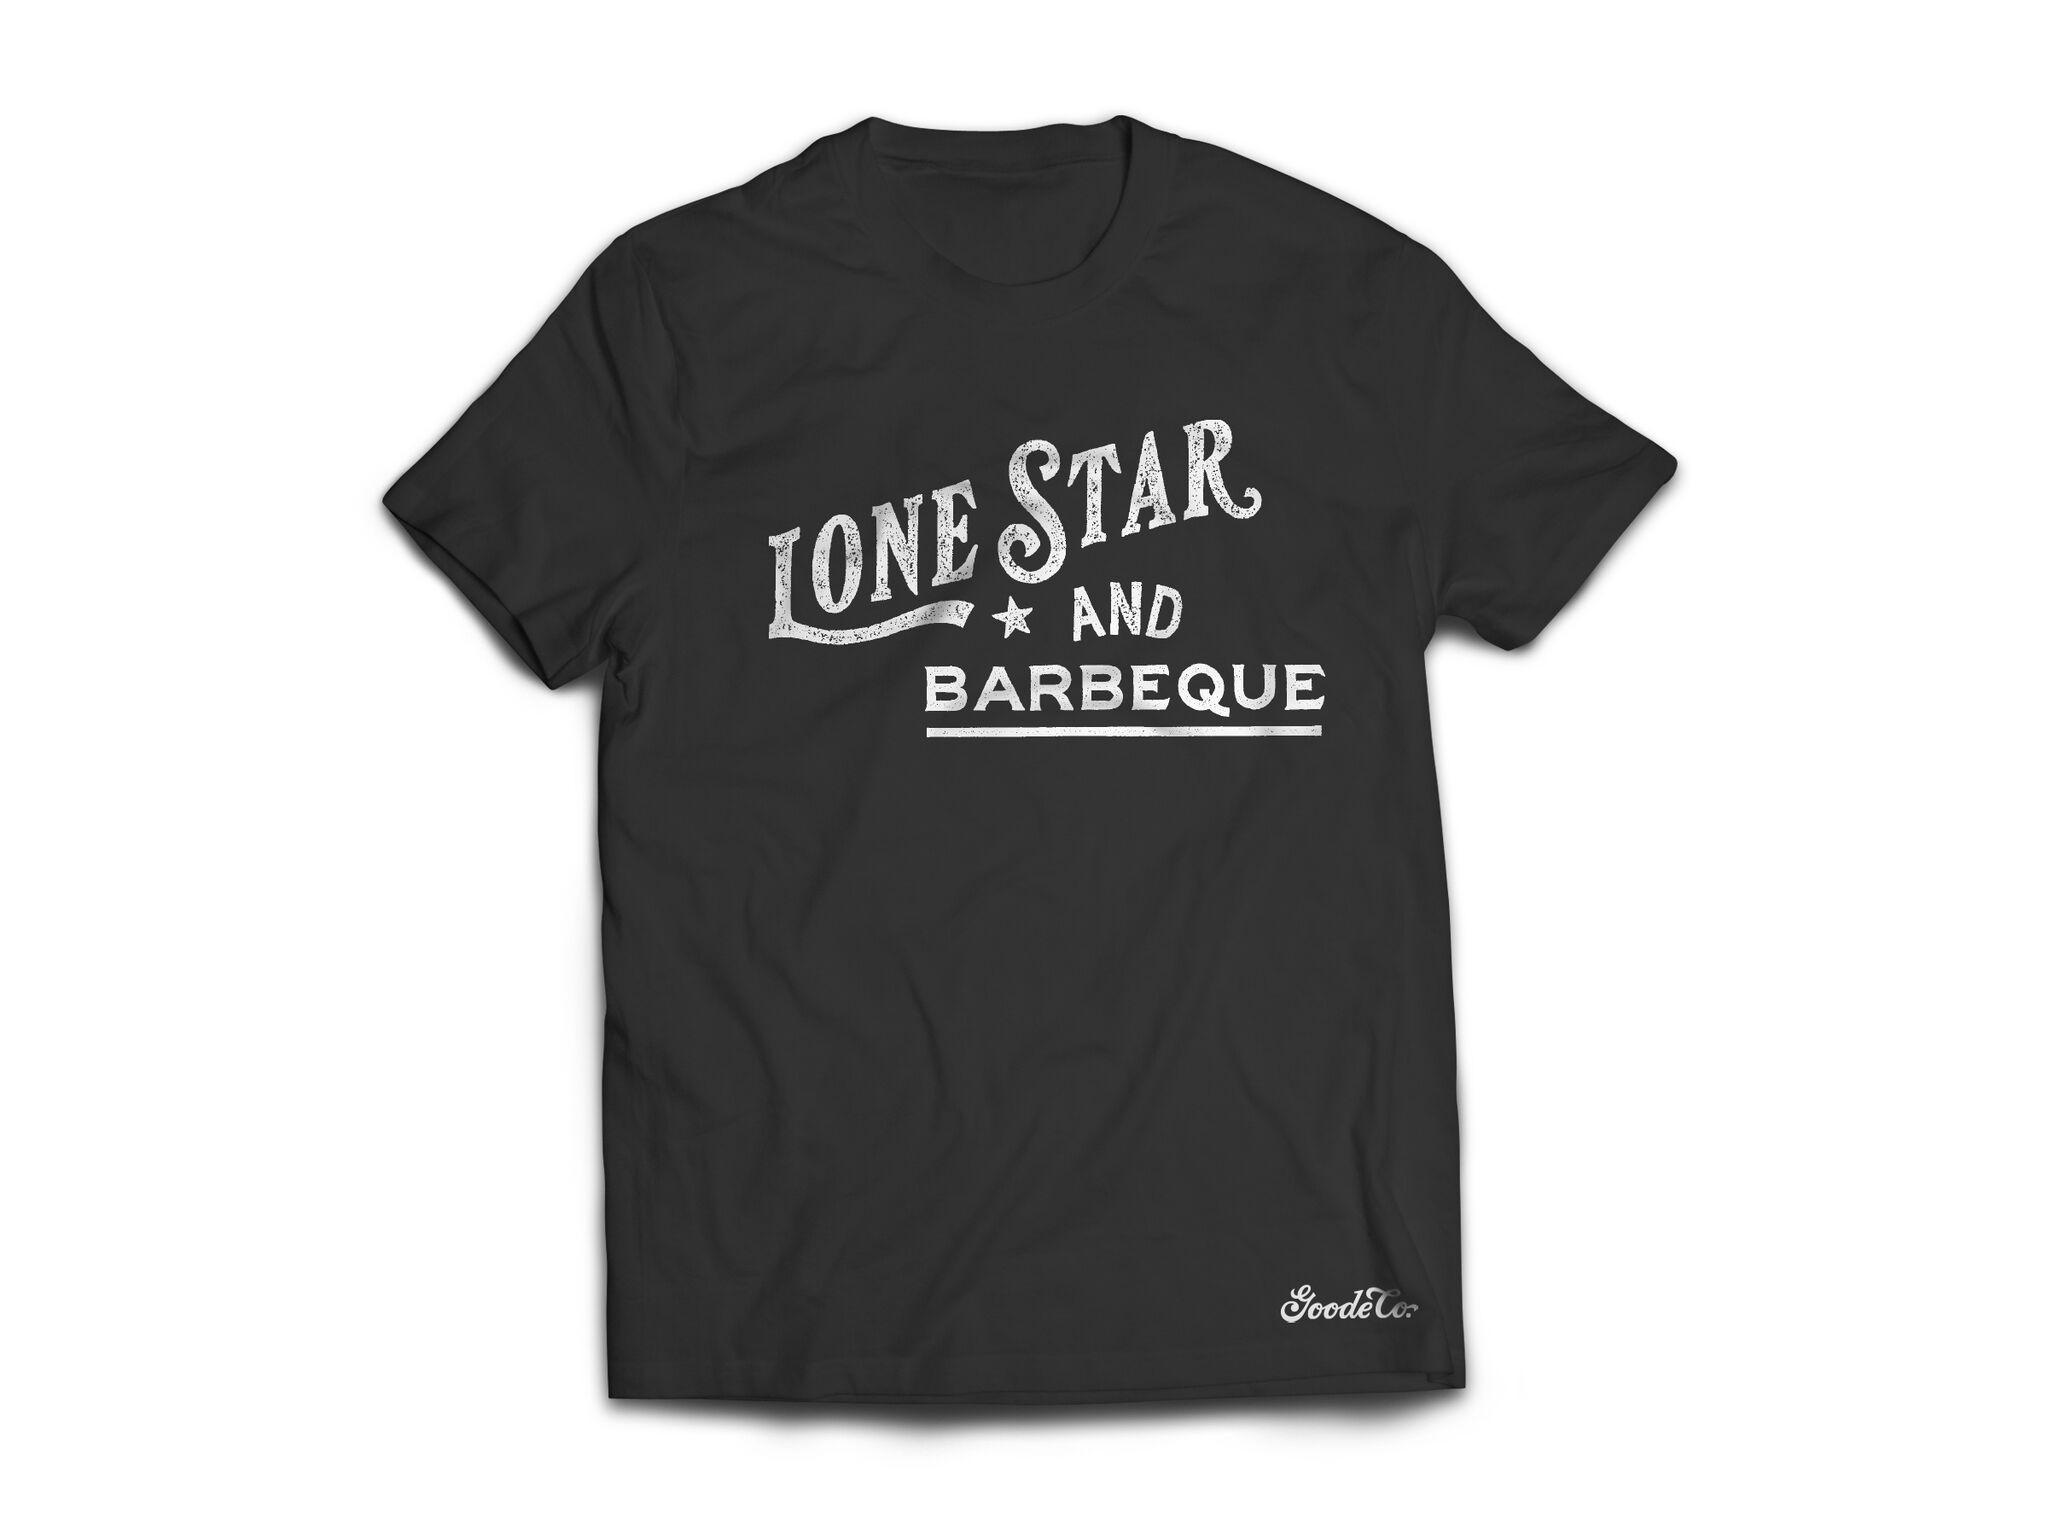 """Product photo for Goode Co's """"Lone Star & BBQ"""" t-shirt."""